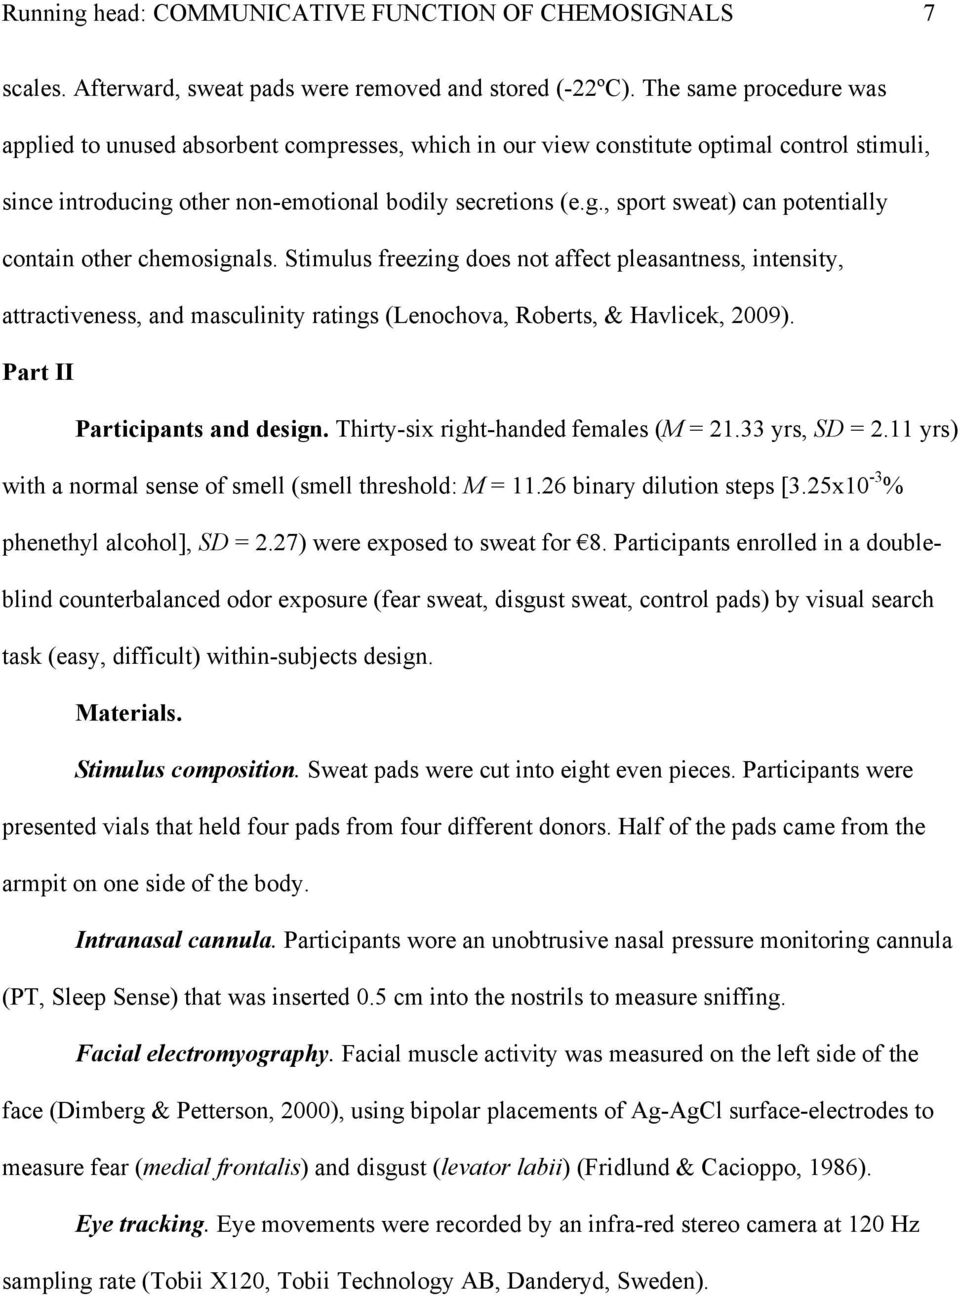 Stimulus freezing does not affect pleasantness, intensity, attractiveness, and masculinity ratings (Lenochova, Roberts, & Havlicek, 2009). Part II Participants and design.